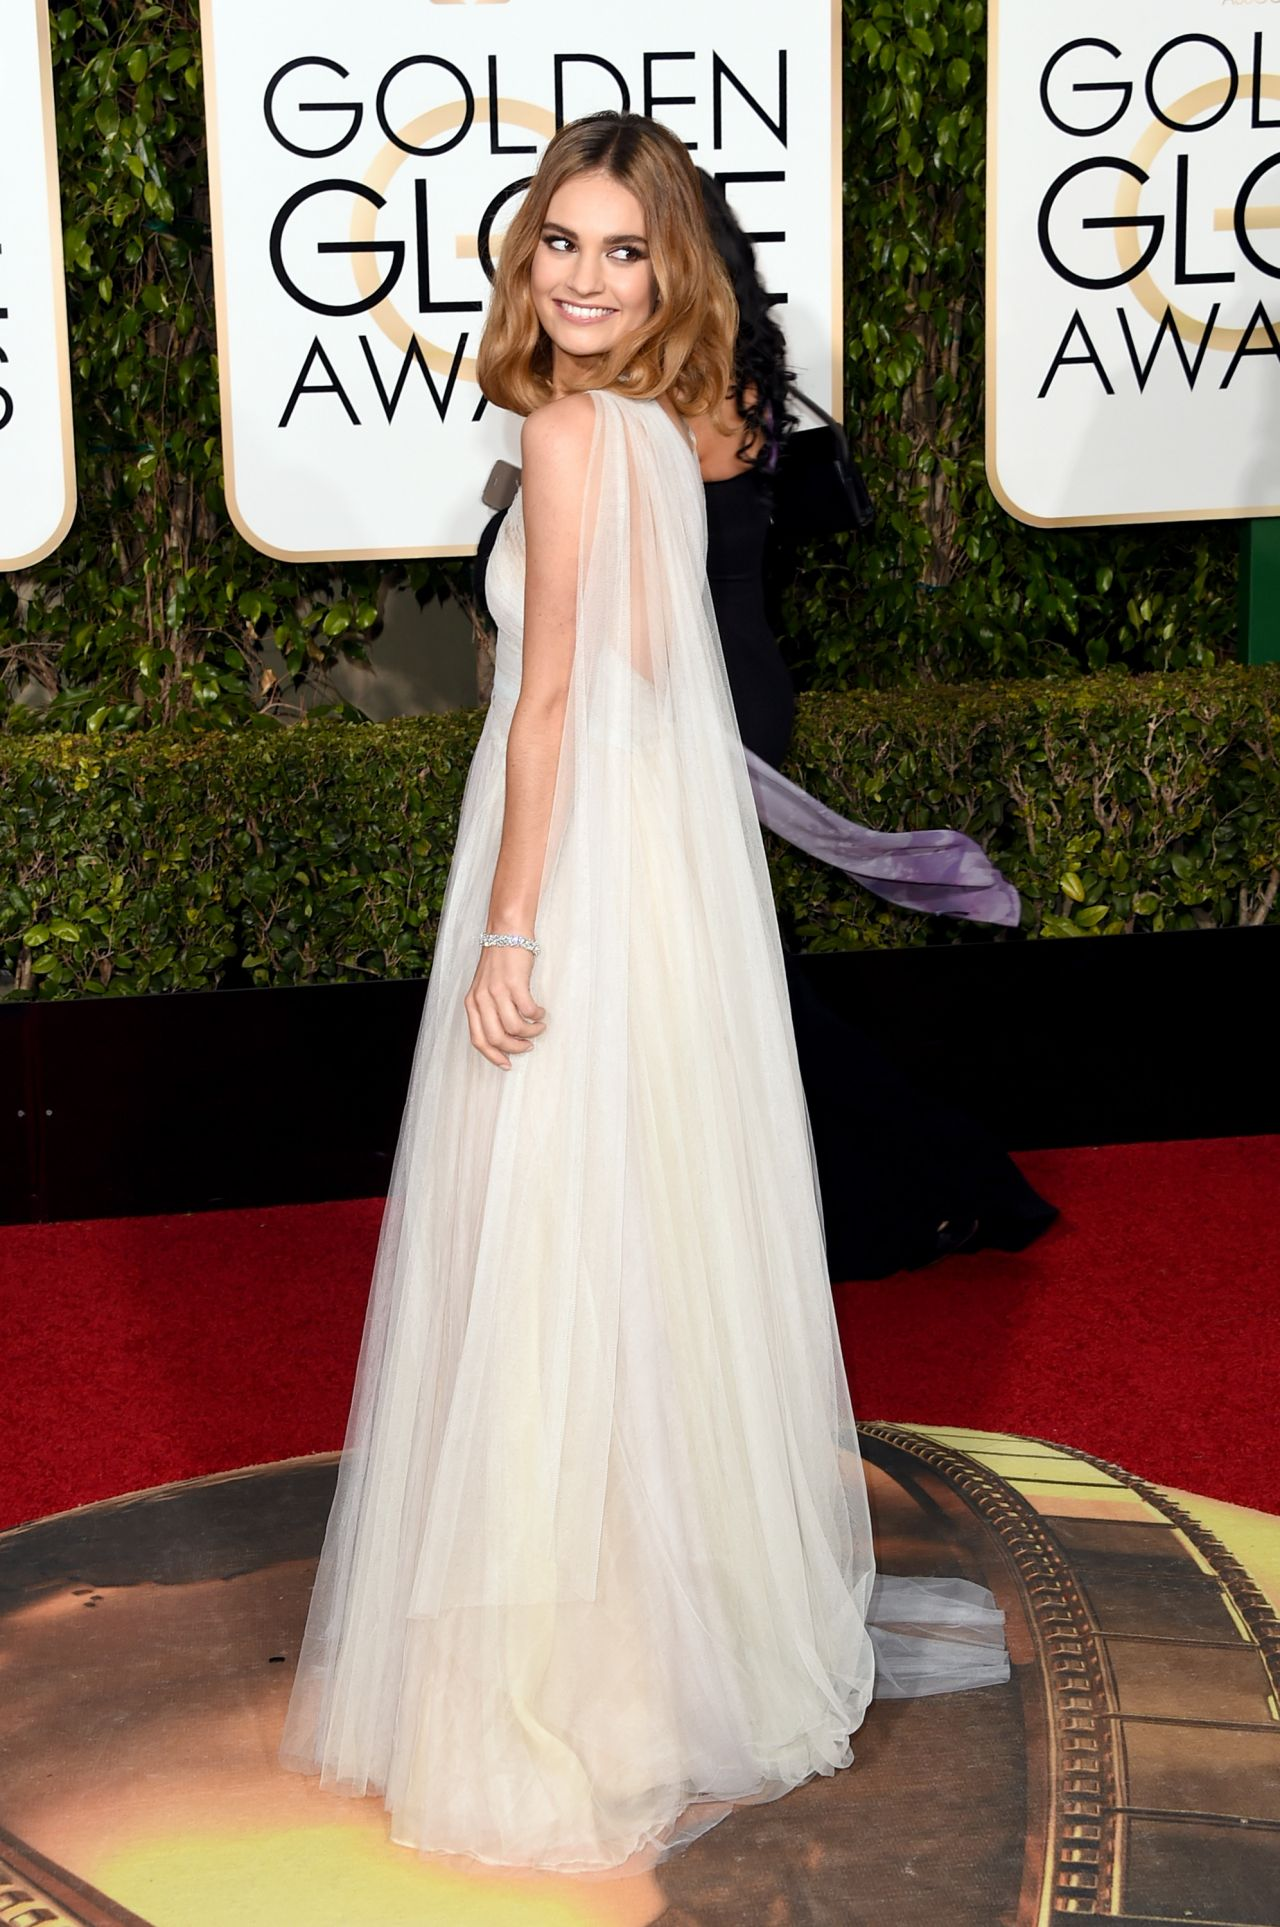 lily-james-2016-golden-globe-awards-in-beverly-hills-2